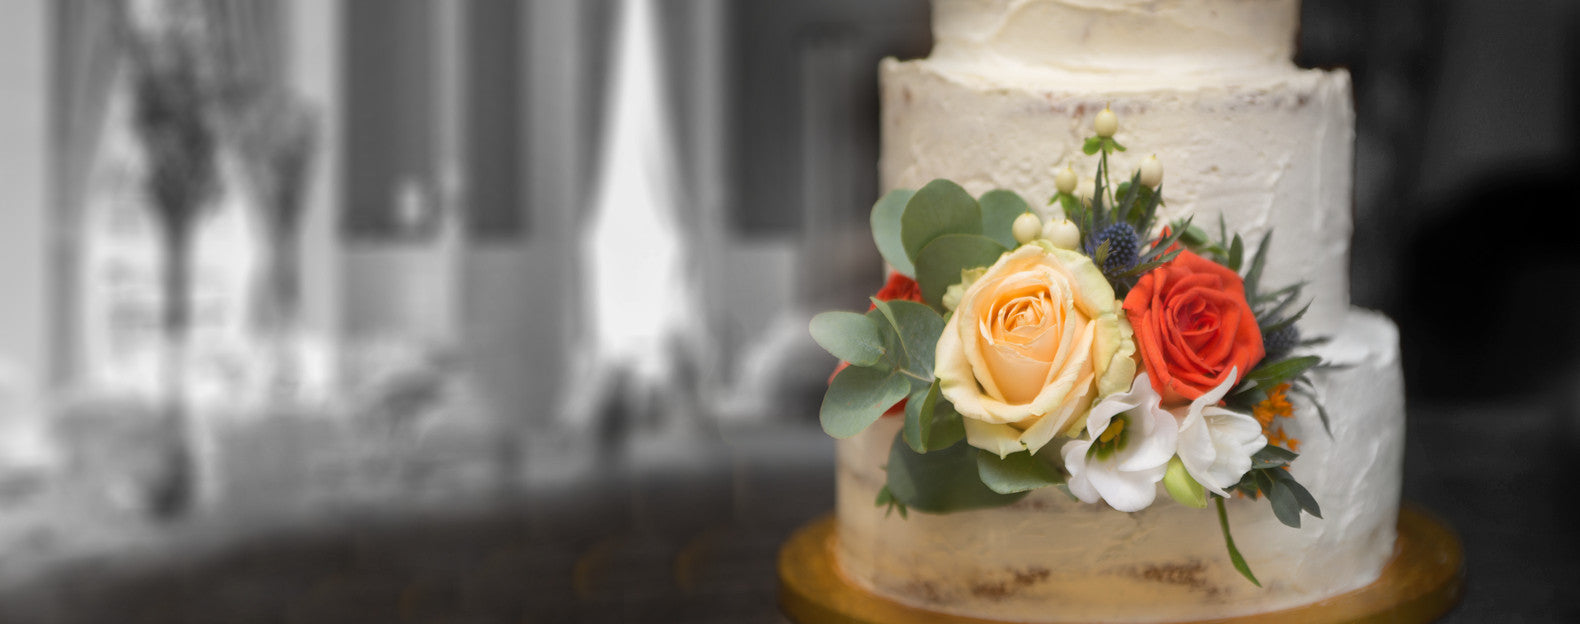 CAKE CREATORS IN BRIGHTON AND HOVE